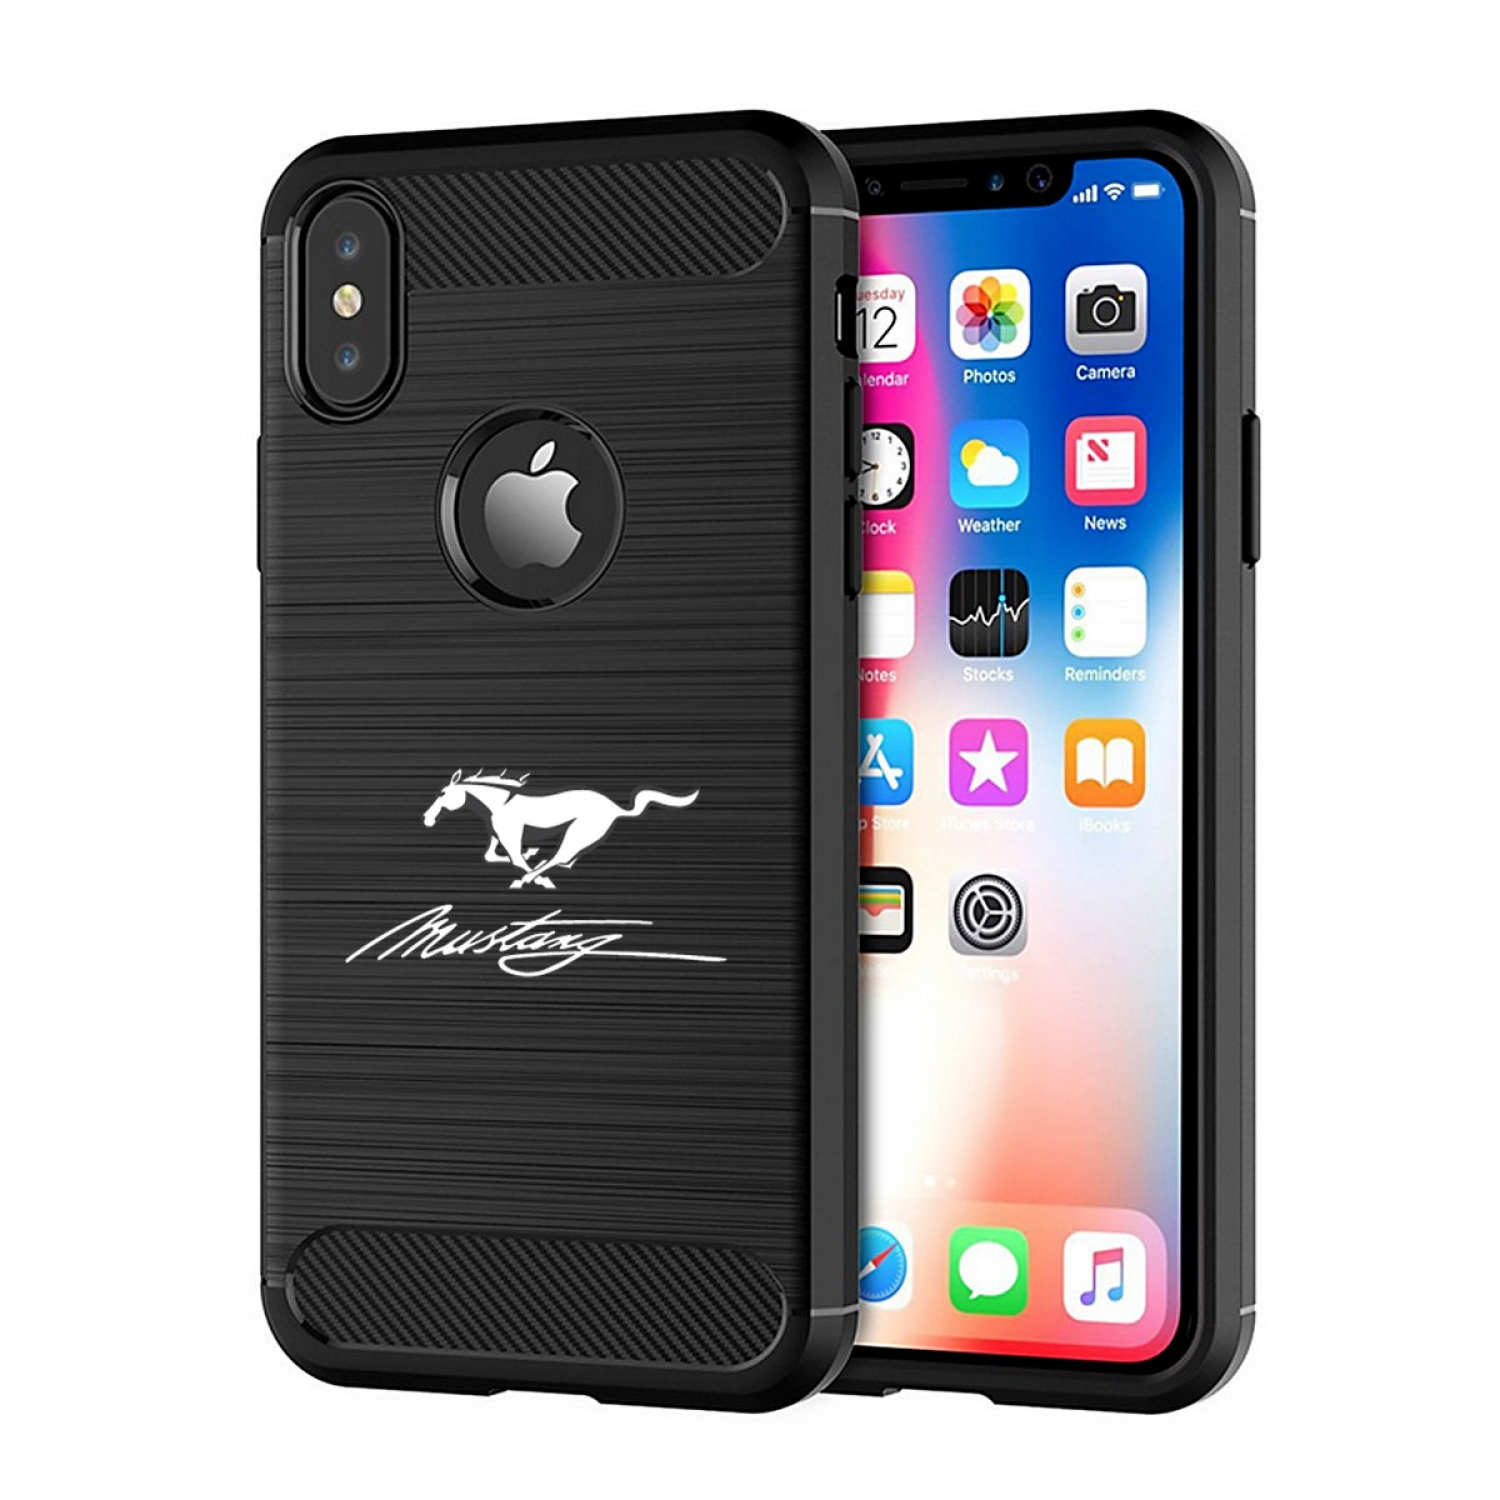 Ford Mustang Script iPhone X TPU Shockproof Black Carbon Fiber Textures Stripes Cell Phone Case